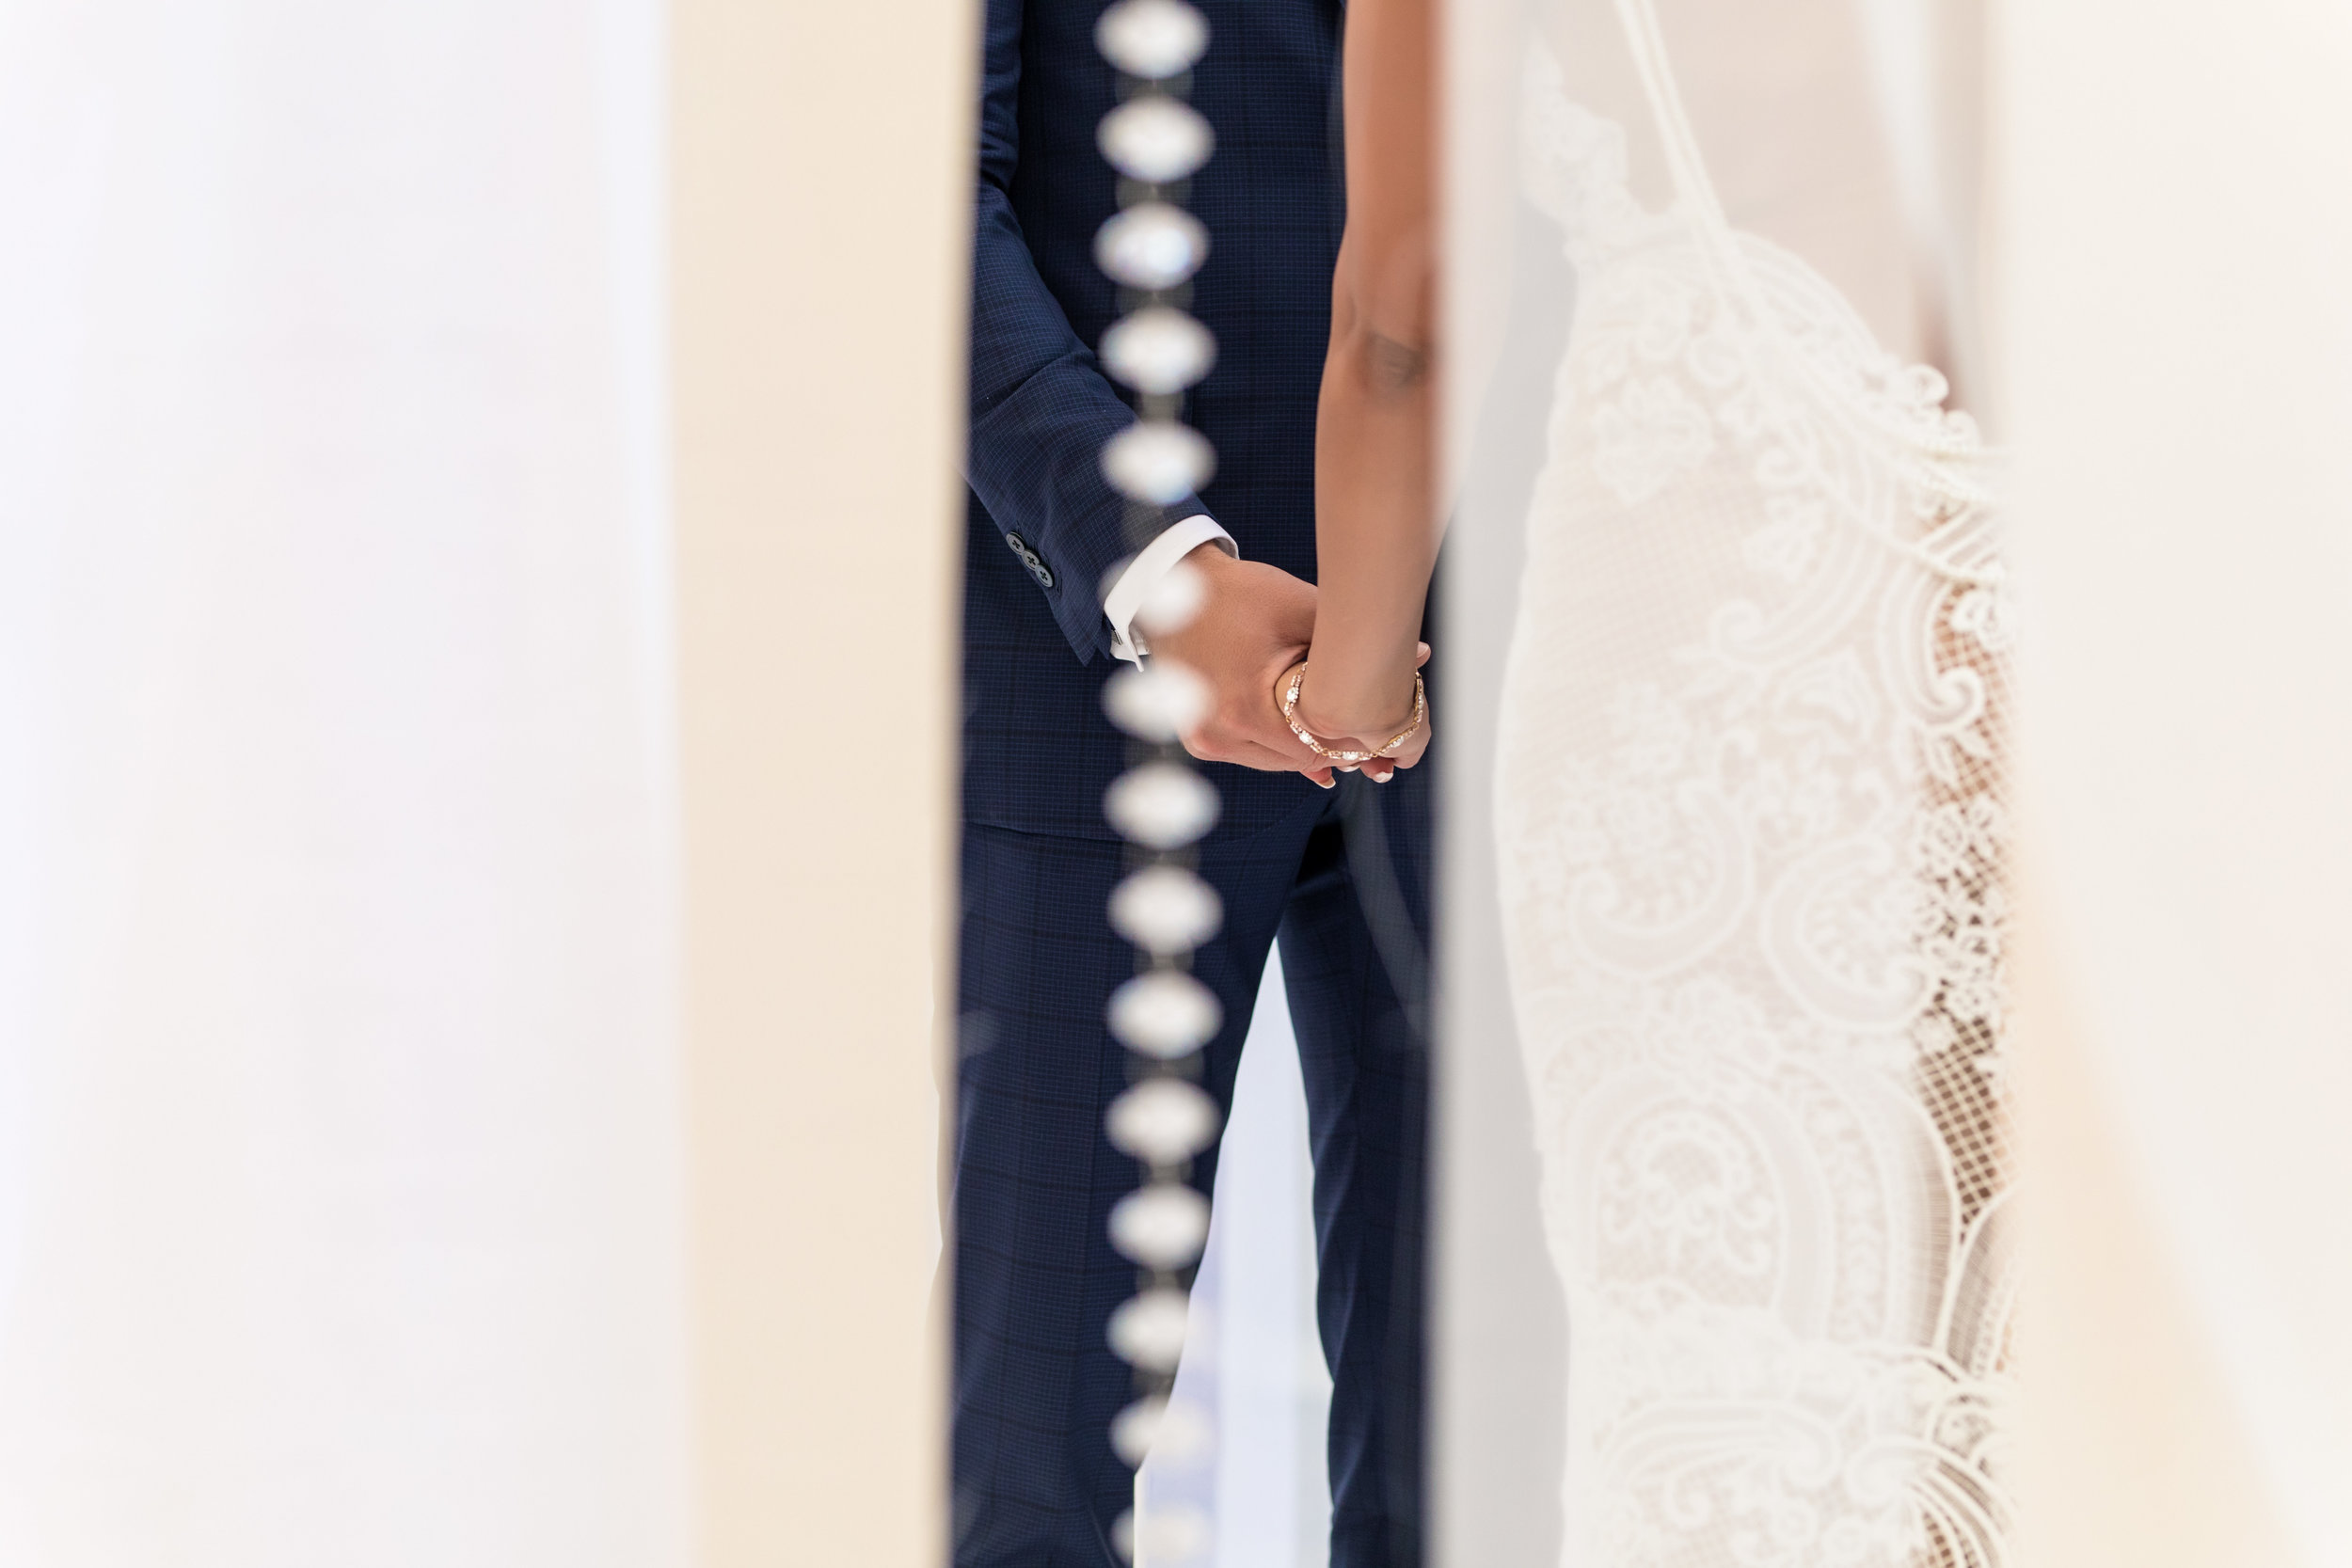 Holding hands in wedding ceremony.Wedding Planning by  Andrea Eppolito Events  · Photography by  Shandro Photo   · Wedding Venue  Four Seasons Las Vegas  · Floral and Decor by  Destination by Design  · Cake by  Four Seasons Las Vegas  · Chandeliers and Lighting by  LED Unplugged  · Dress by  Berta